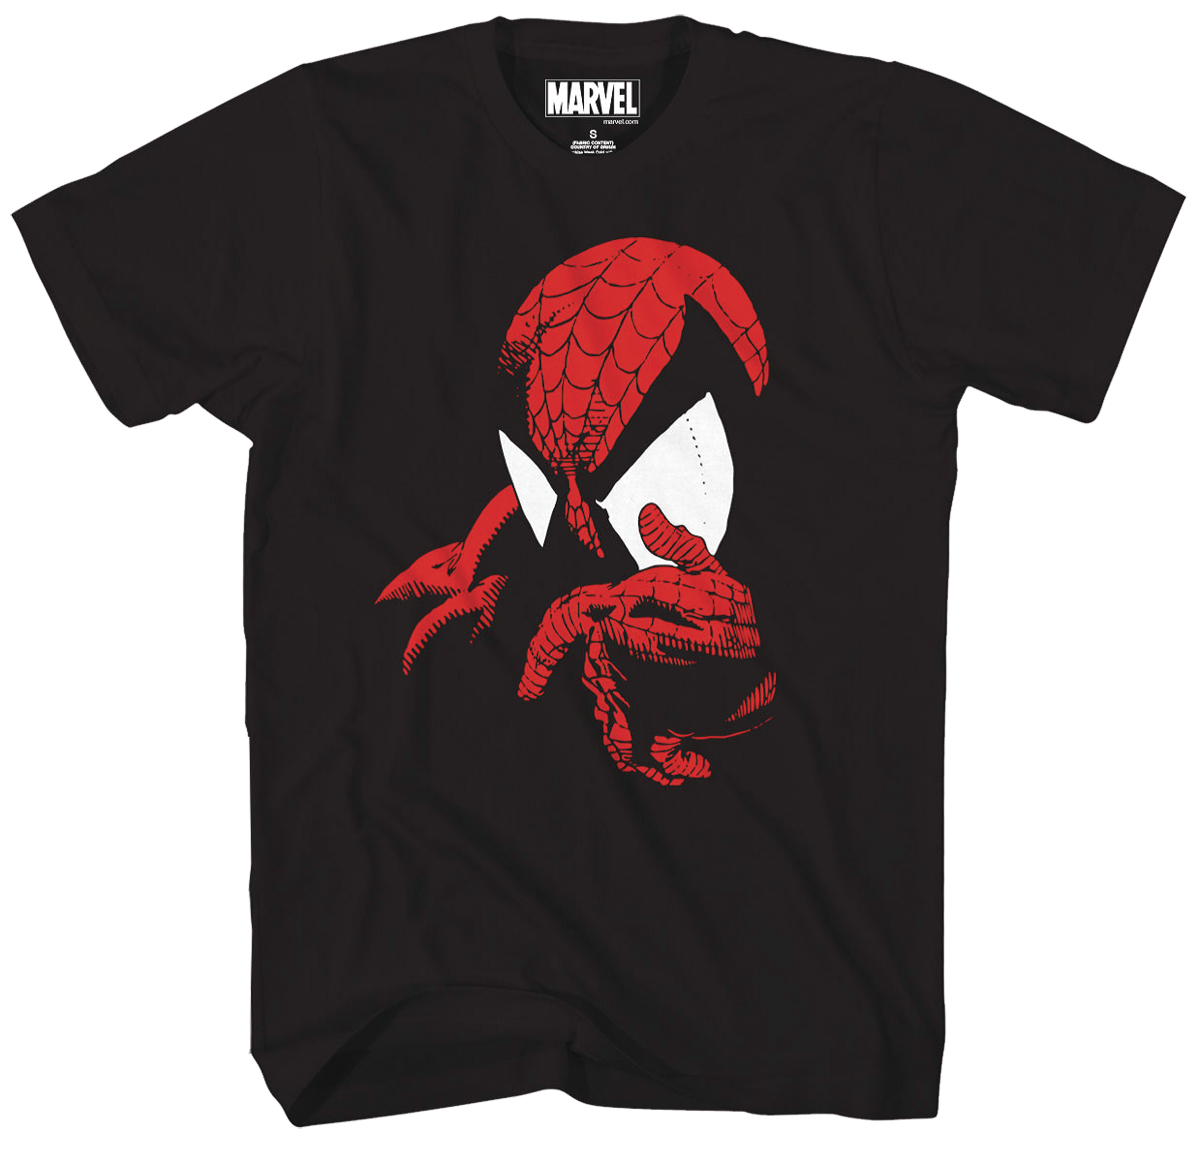 MARVEL SPIDEY THINK RED FOIL PX BLACK T/S LG